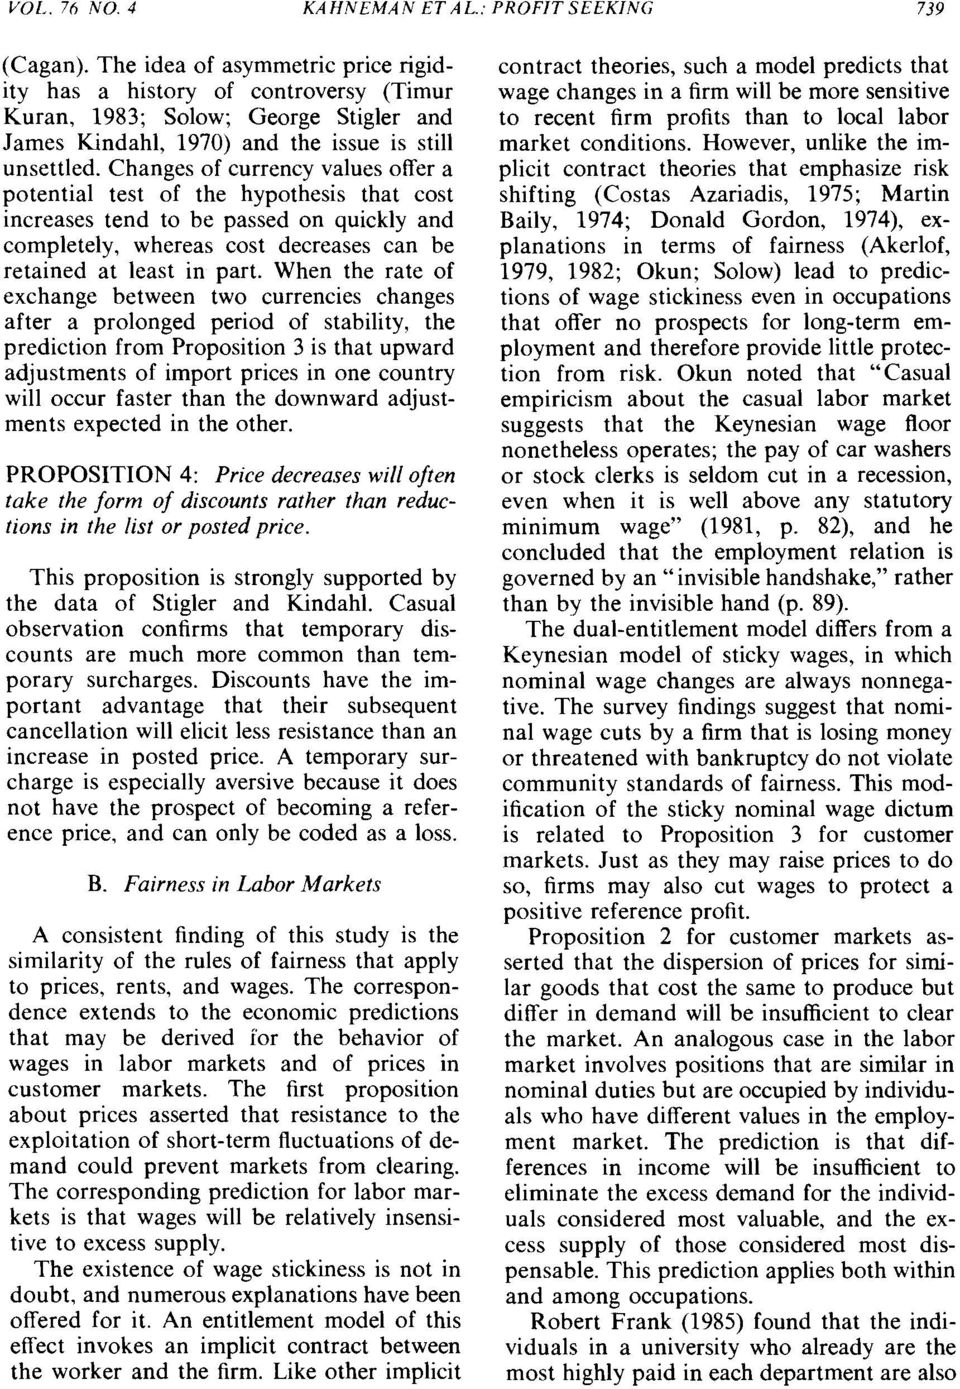 Changes of currency values offer a potential test of the hypothesis that cost increases tend to be passed on quickly and completely, whereas cost decreases can be retained at least in part.